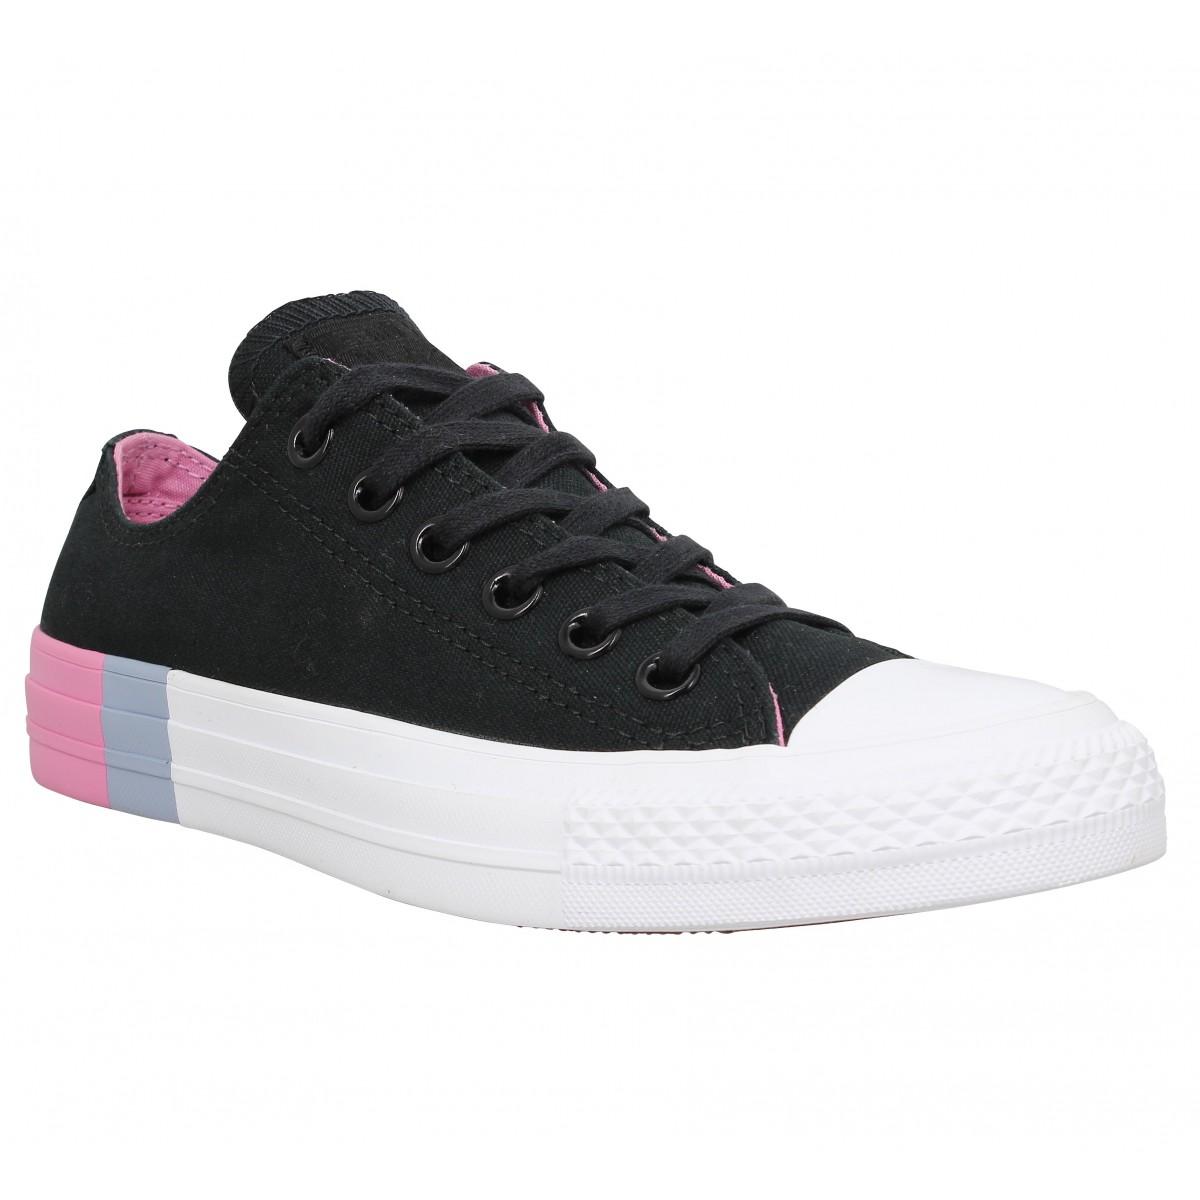 Baskets CONVERSE Chuck Taylor All Star toile Femme Black Orchidee